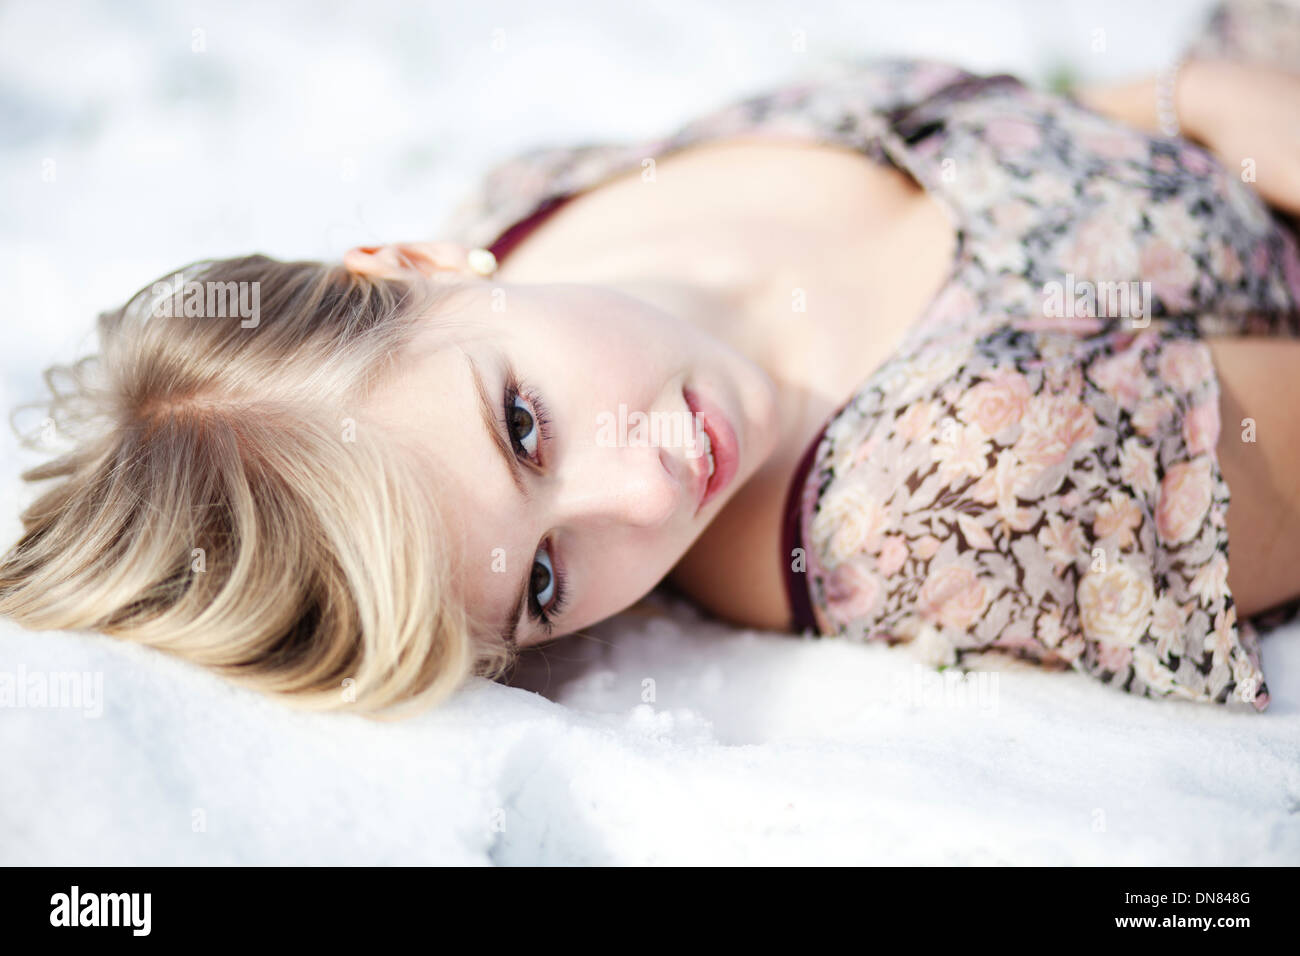 Young woman lying in snow, portrait Photo Stock